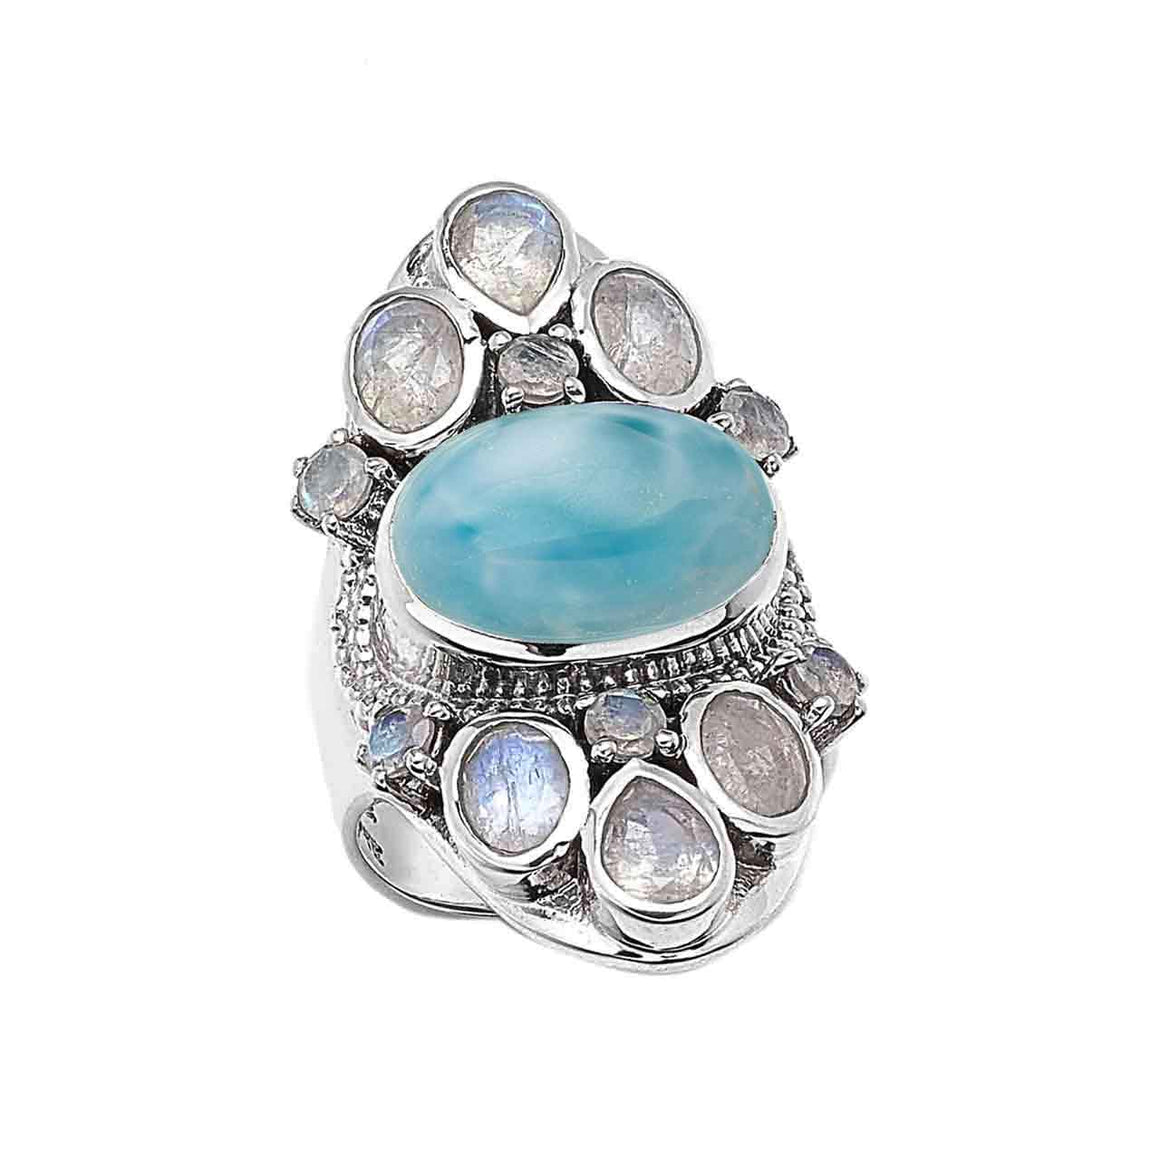 Larimar and Faceted Rainbow Moonstone Gemstone Ring